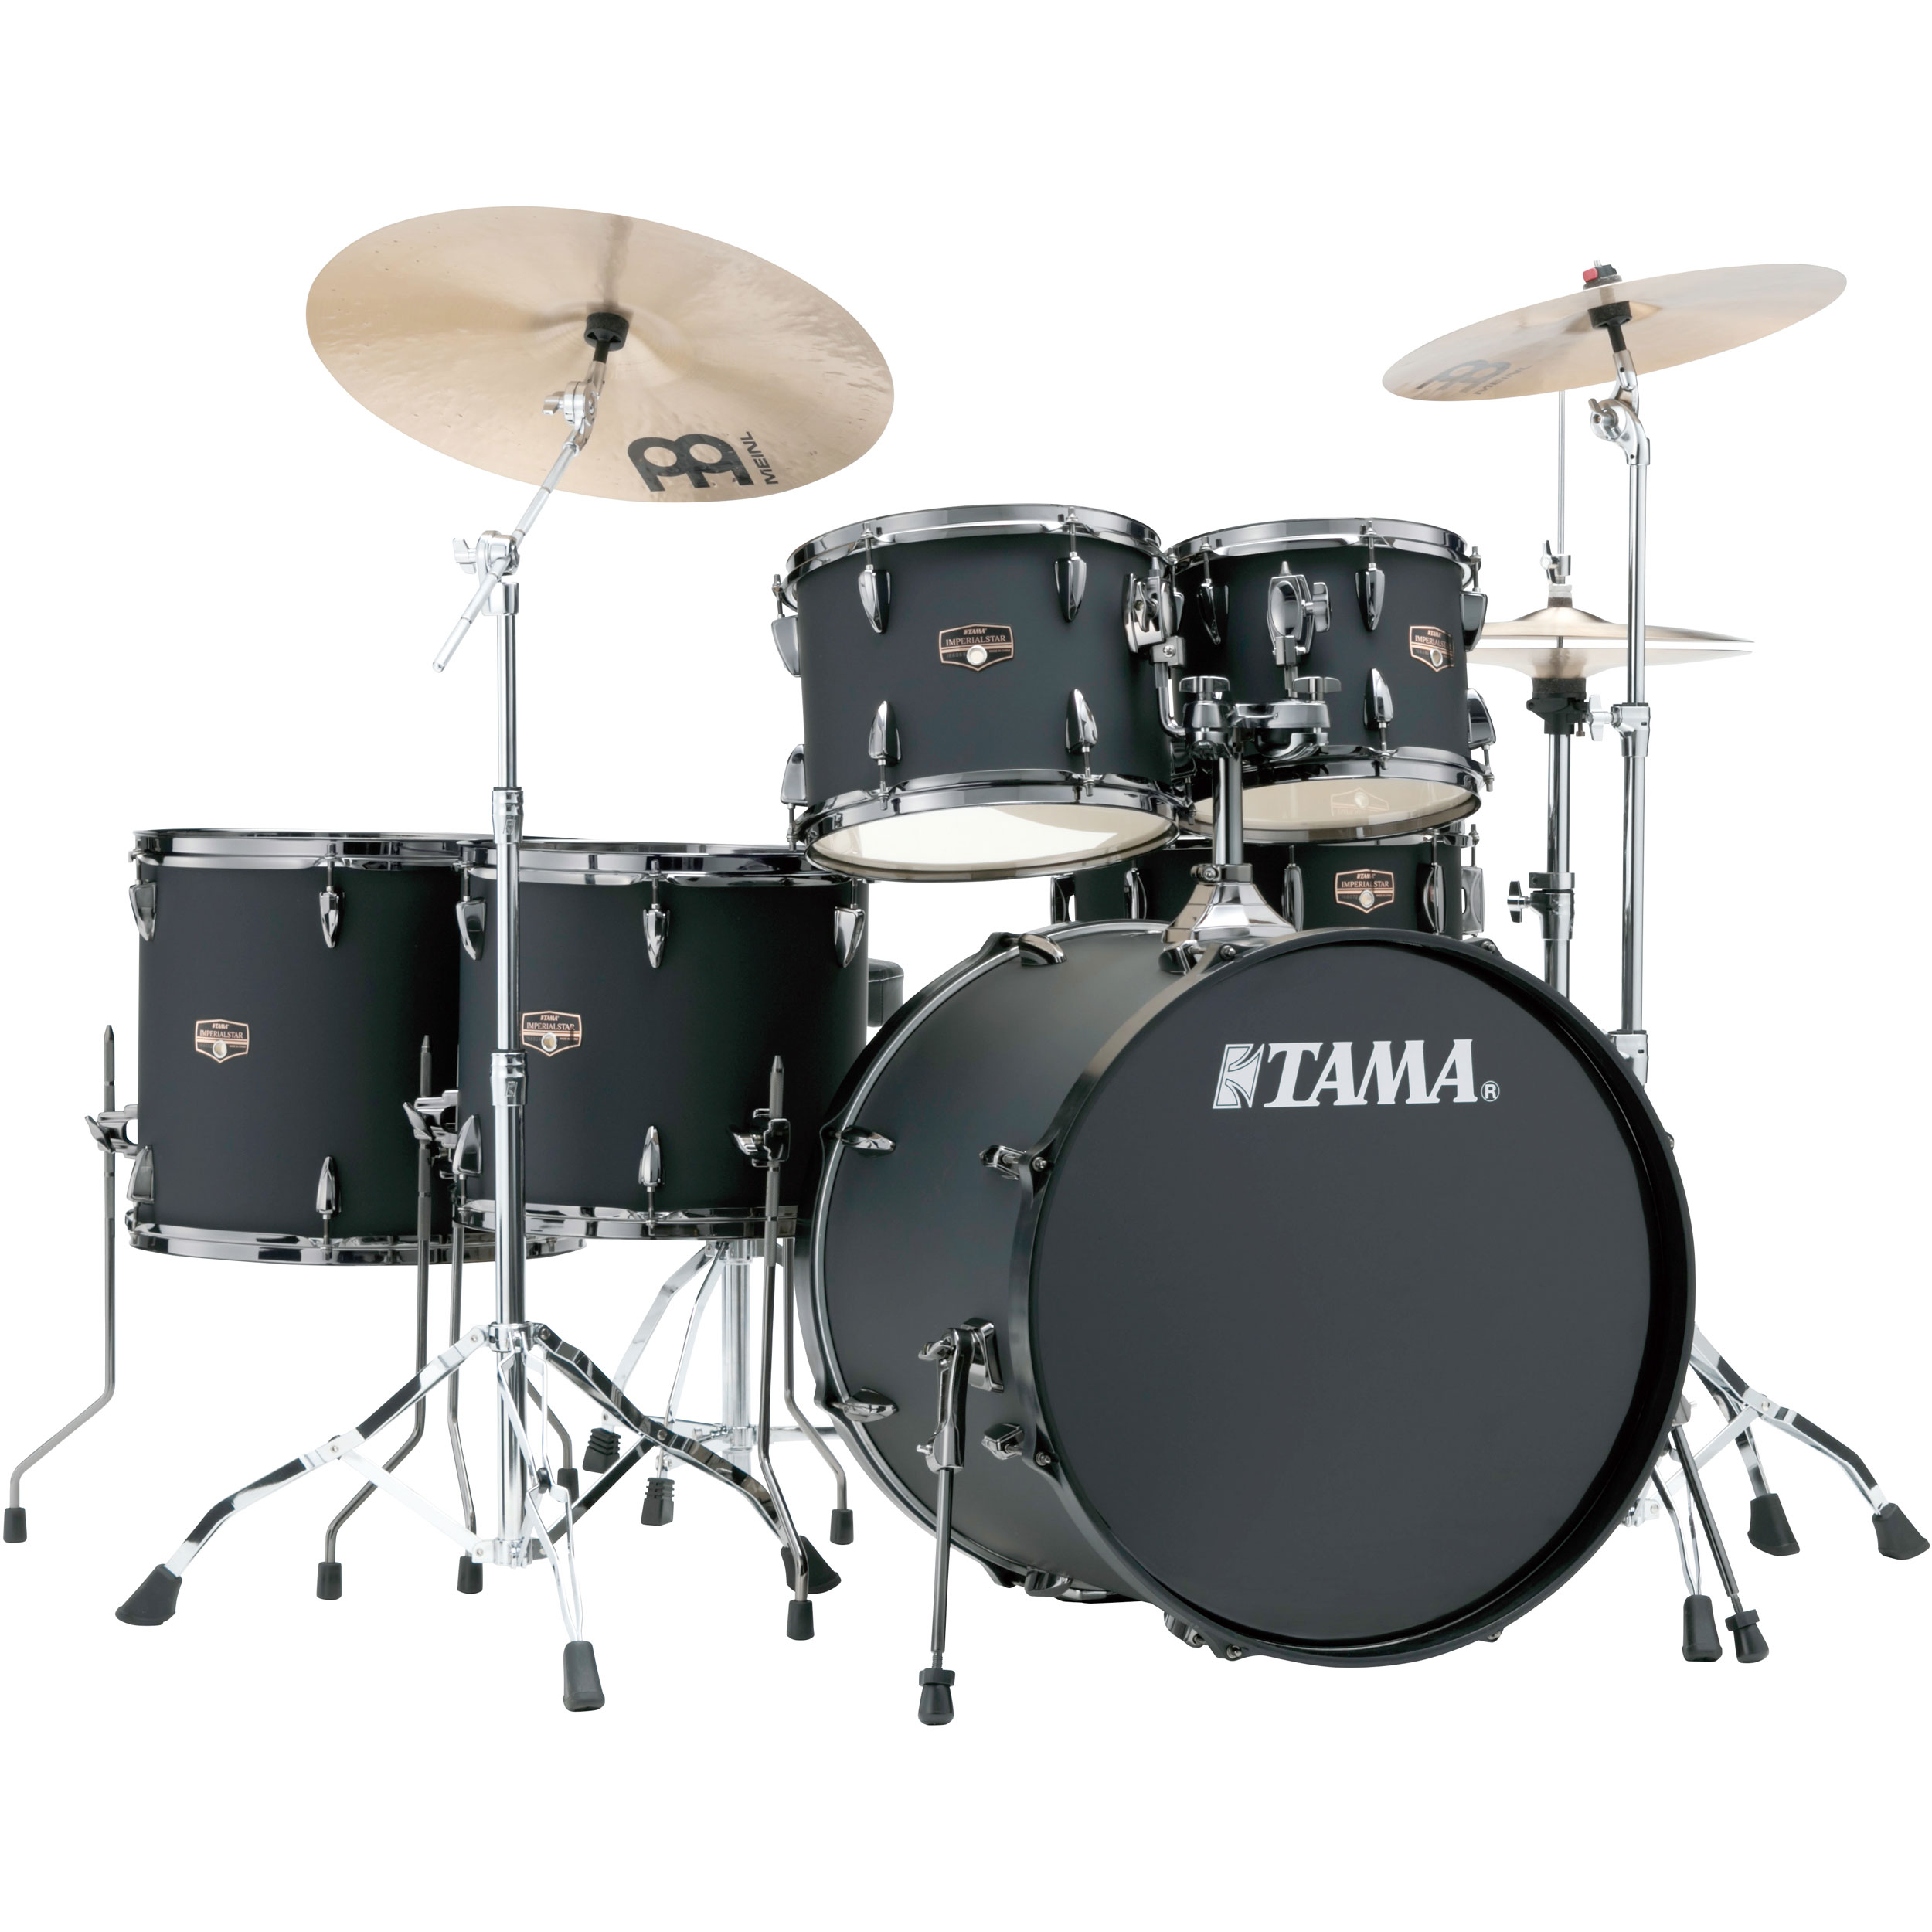 Alternate Image For Tama Imperialstar 6 Piece Drum Set With Black Nickel Hardware And Cymbals